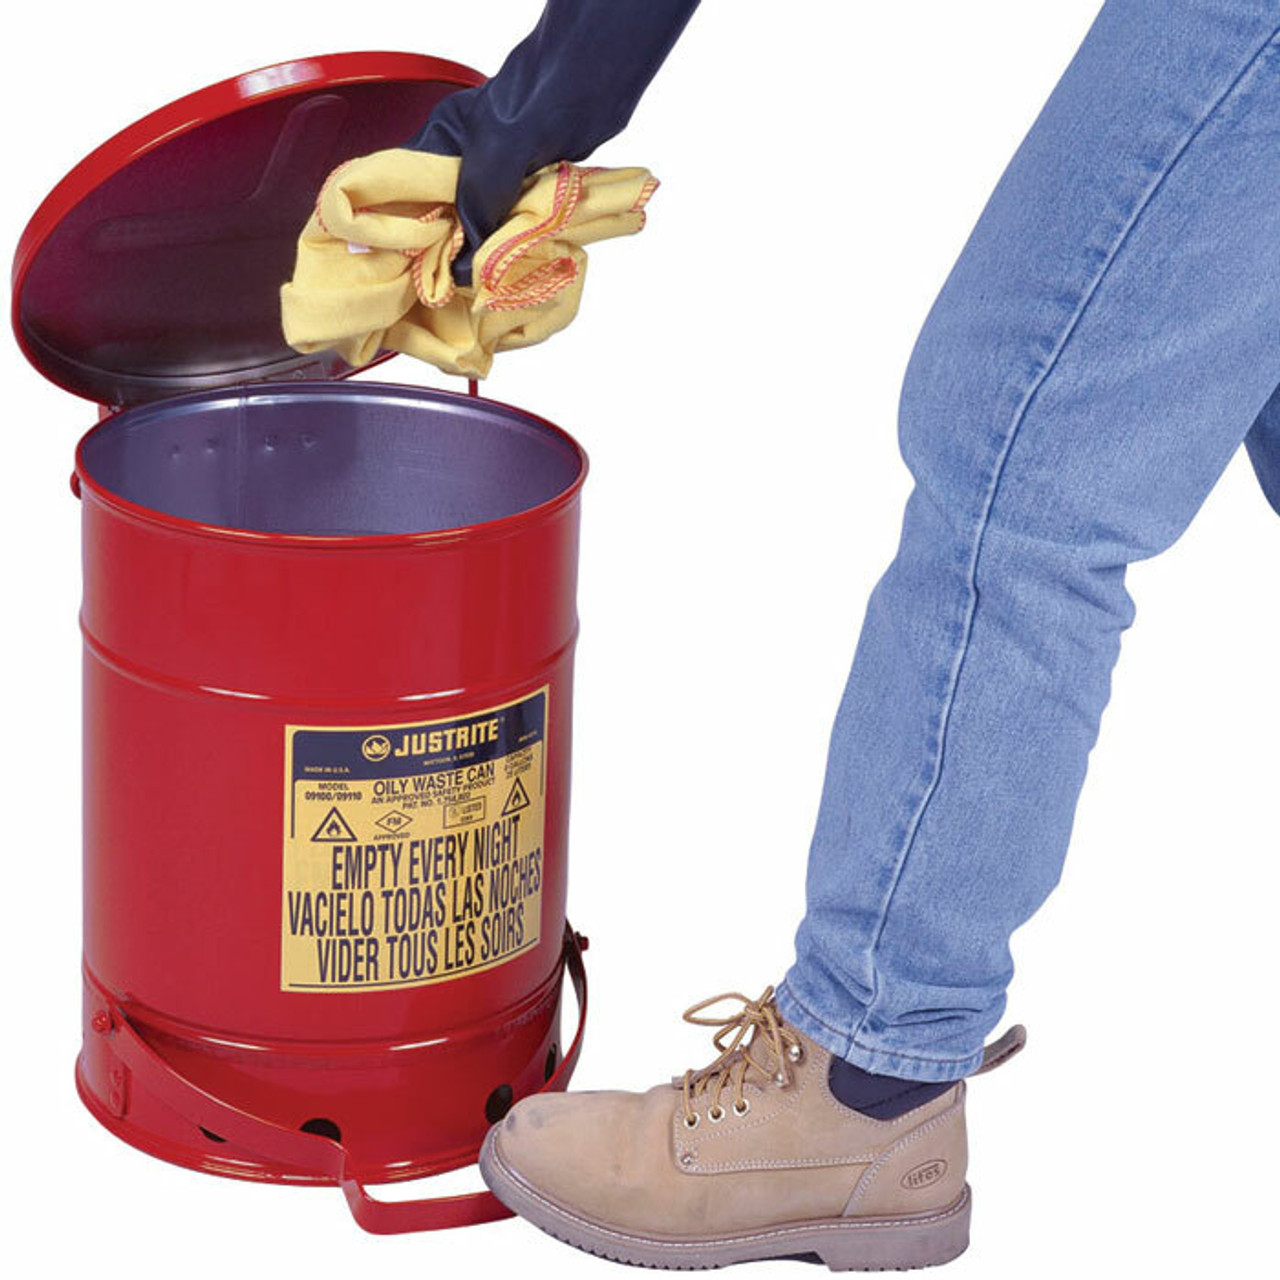 JUSTRITE 09100 Oily Waste Can Red 6 gal